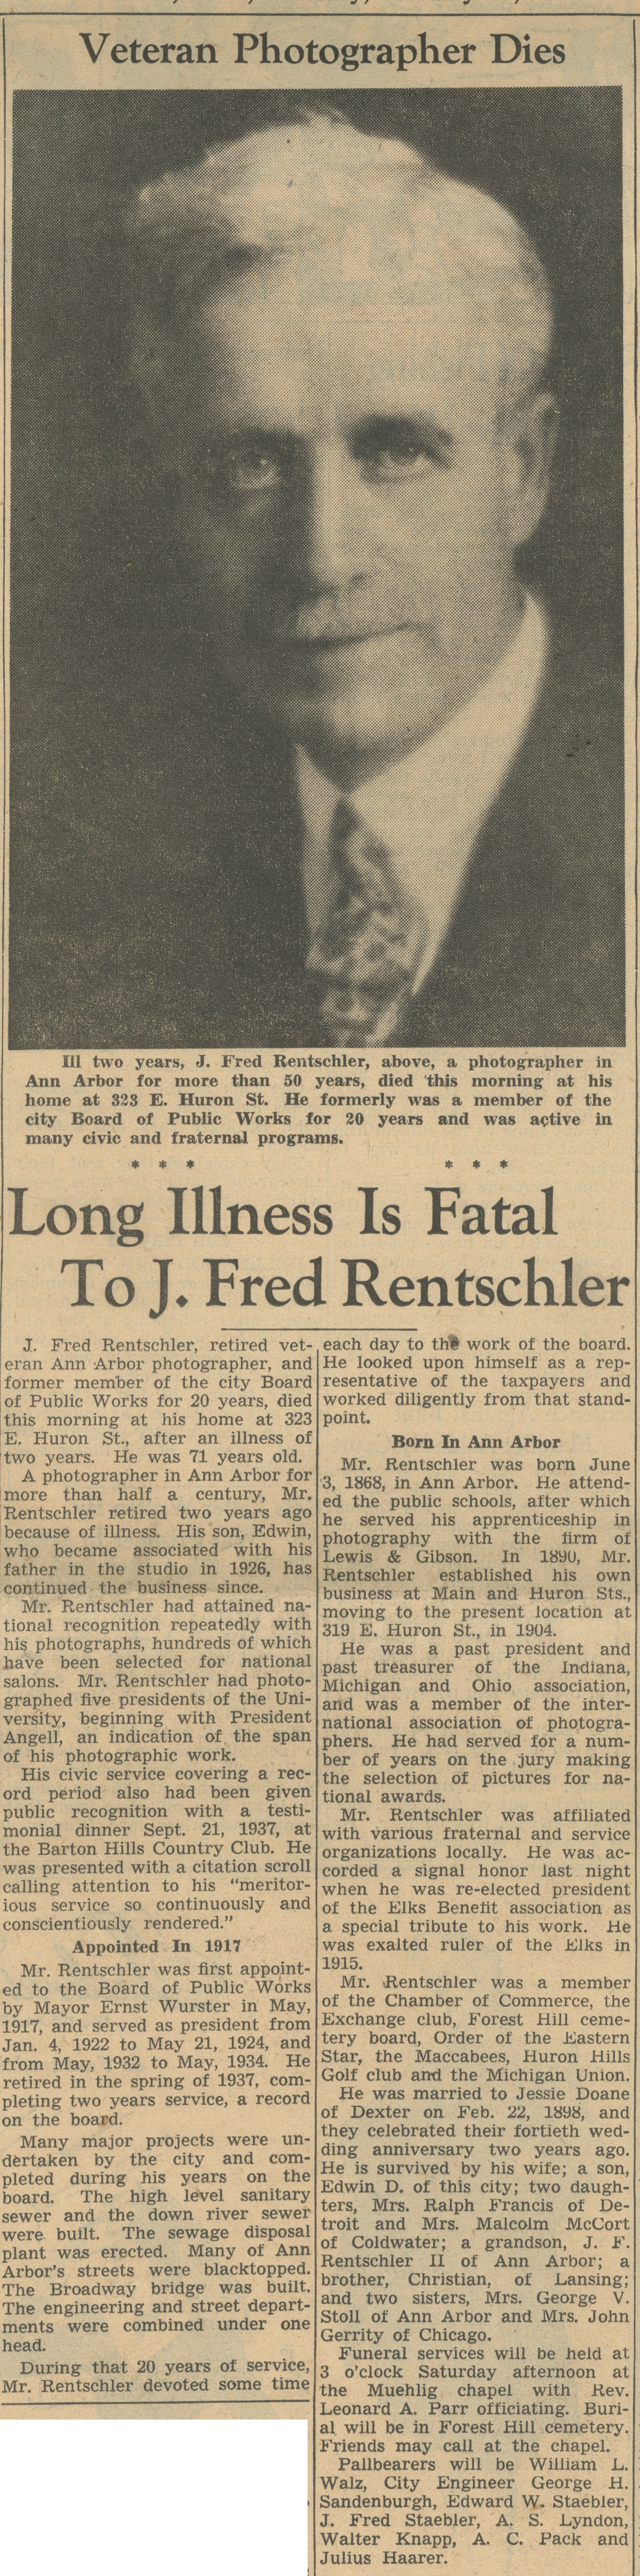 Long Illness Is Fatal To J. Fred Rentschler image